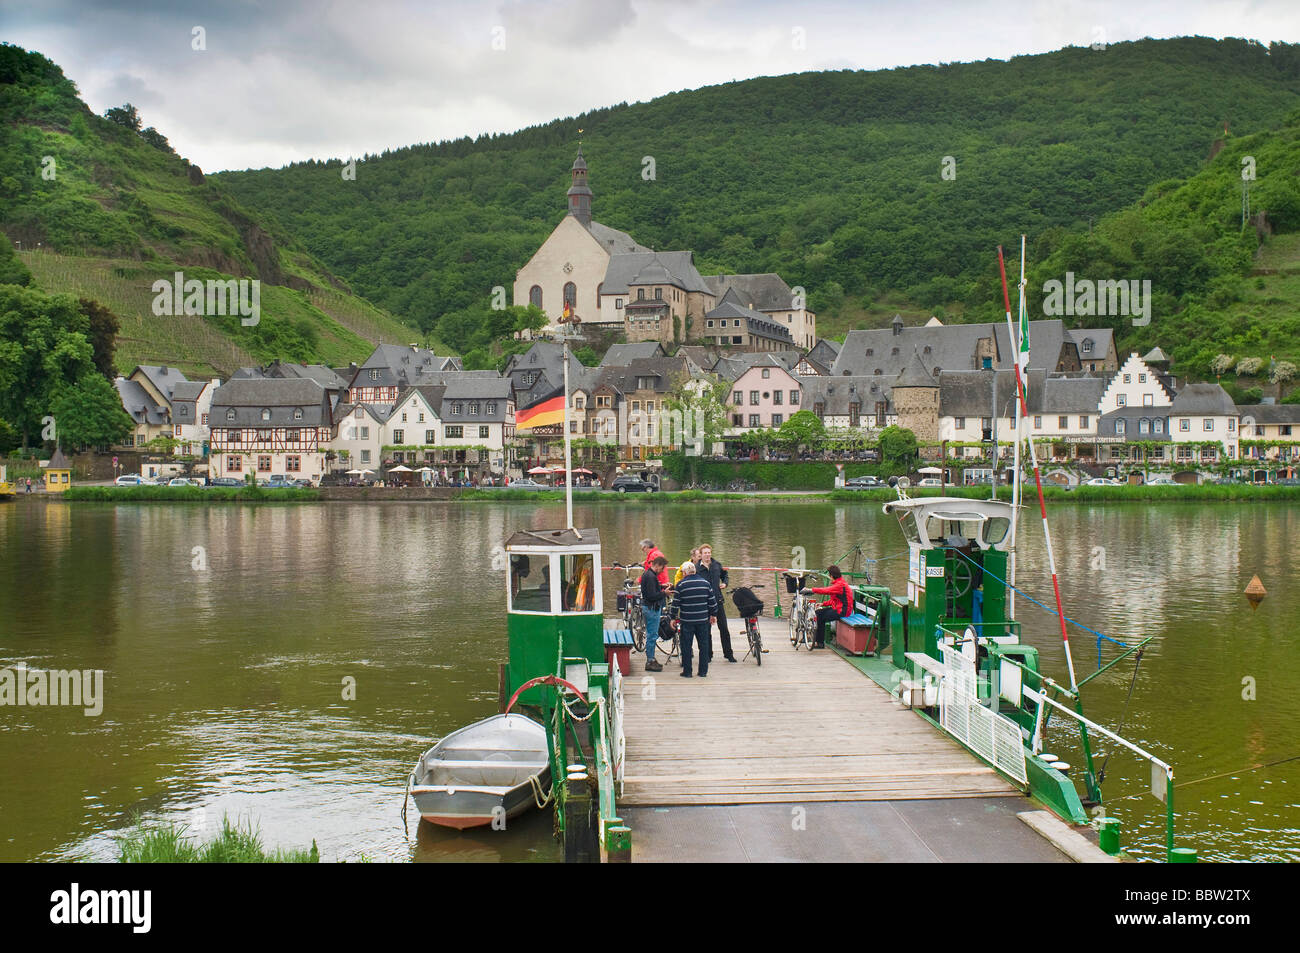 Beilstein Ferry on Mosel River, bikes and people on the ferry, Beilstein and St Josef abbey church in the back, - Stock Image